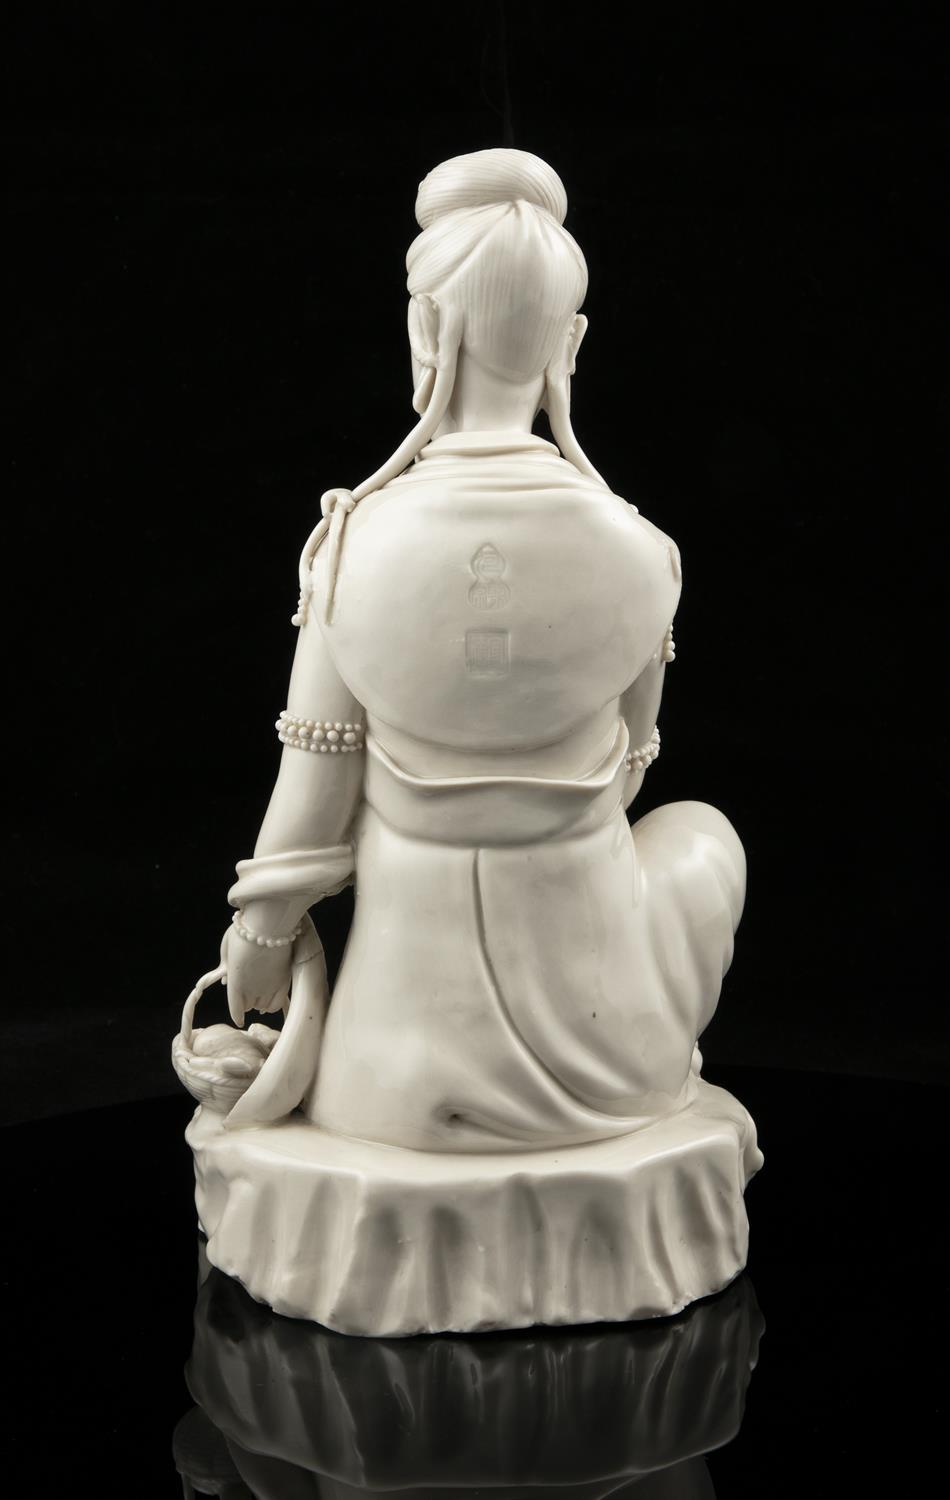 A LARGE DEHUA FIGURE OF A SEATED GUANYIN IMPRESSED WITH A HE CHAOZONG 何朝宗 CALABASH SHAPED SEAL - Image 37 of 48